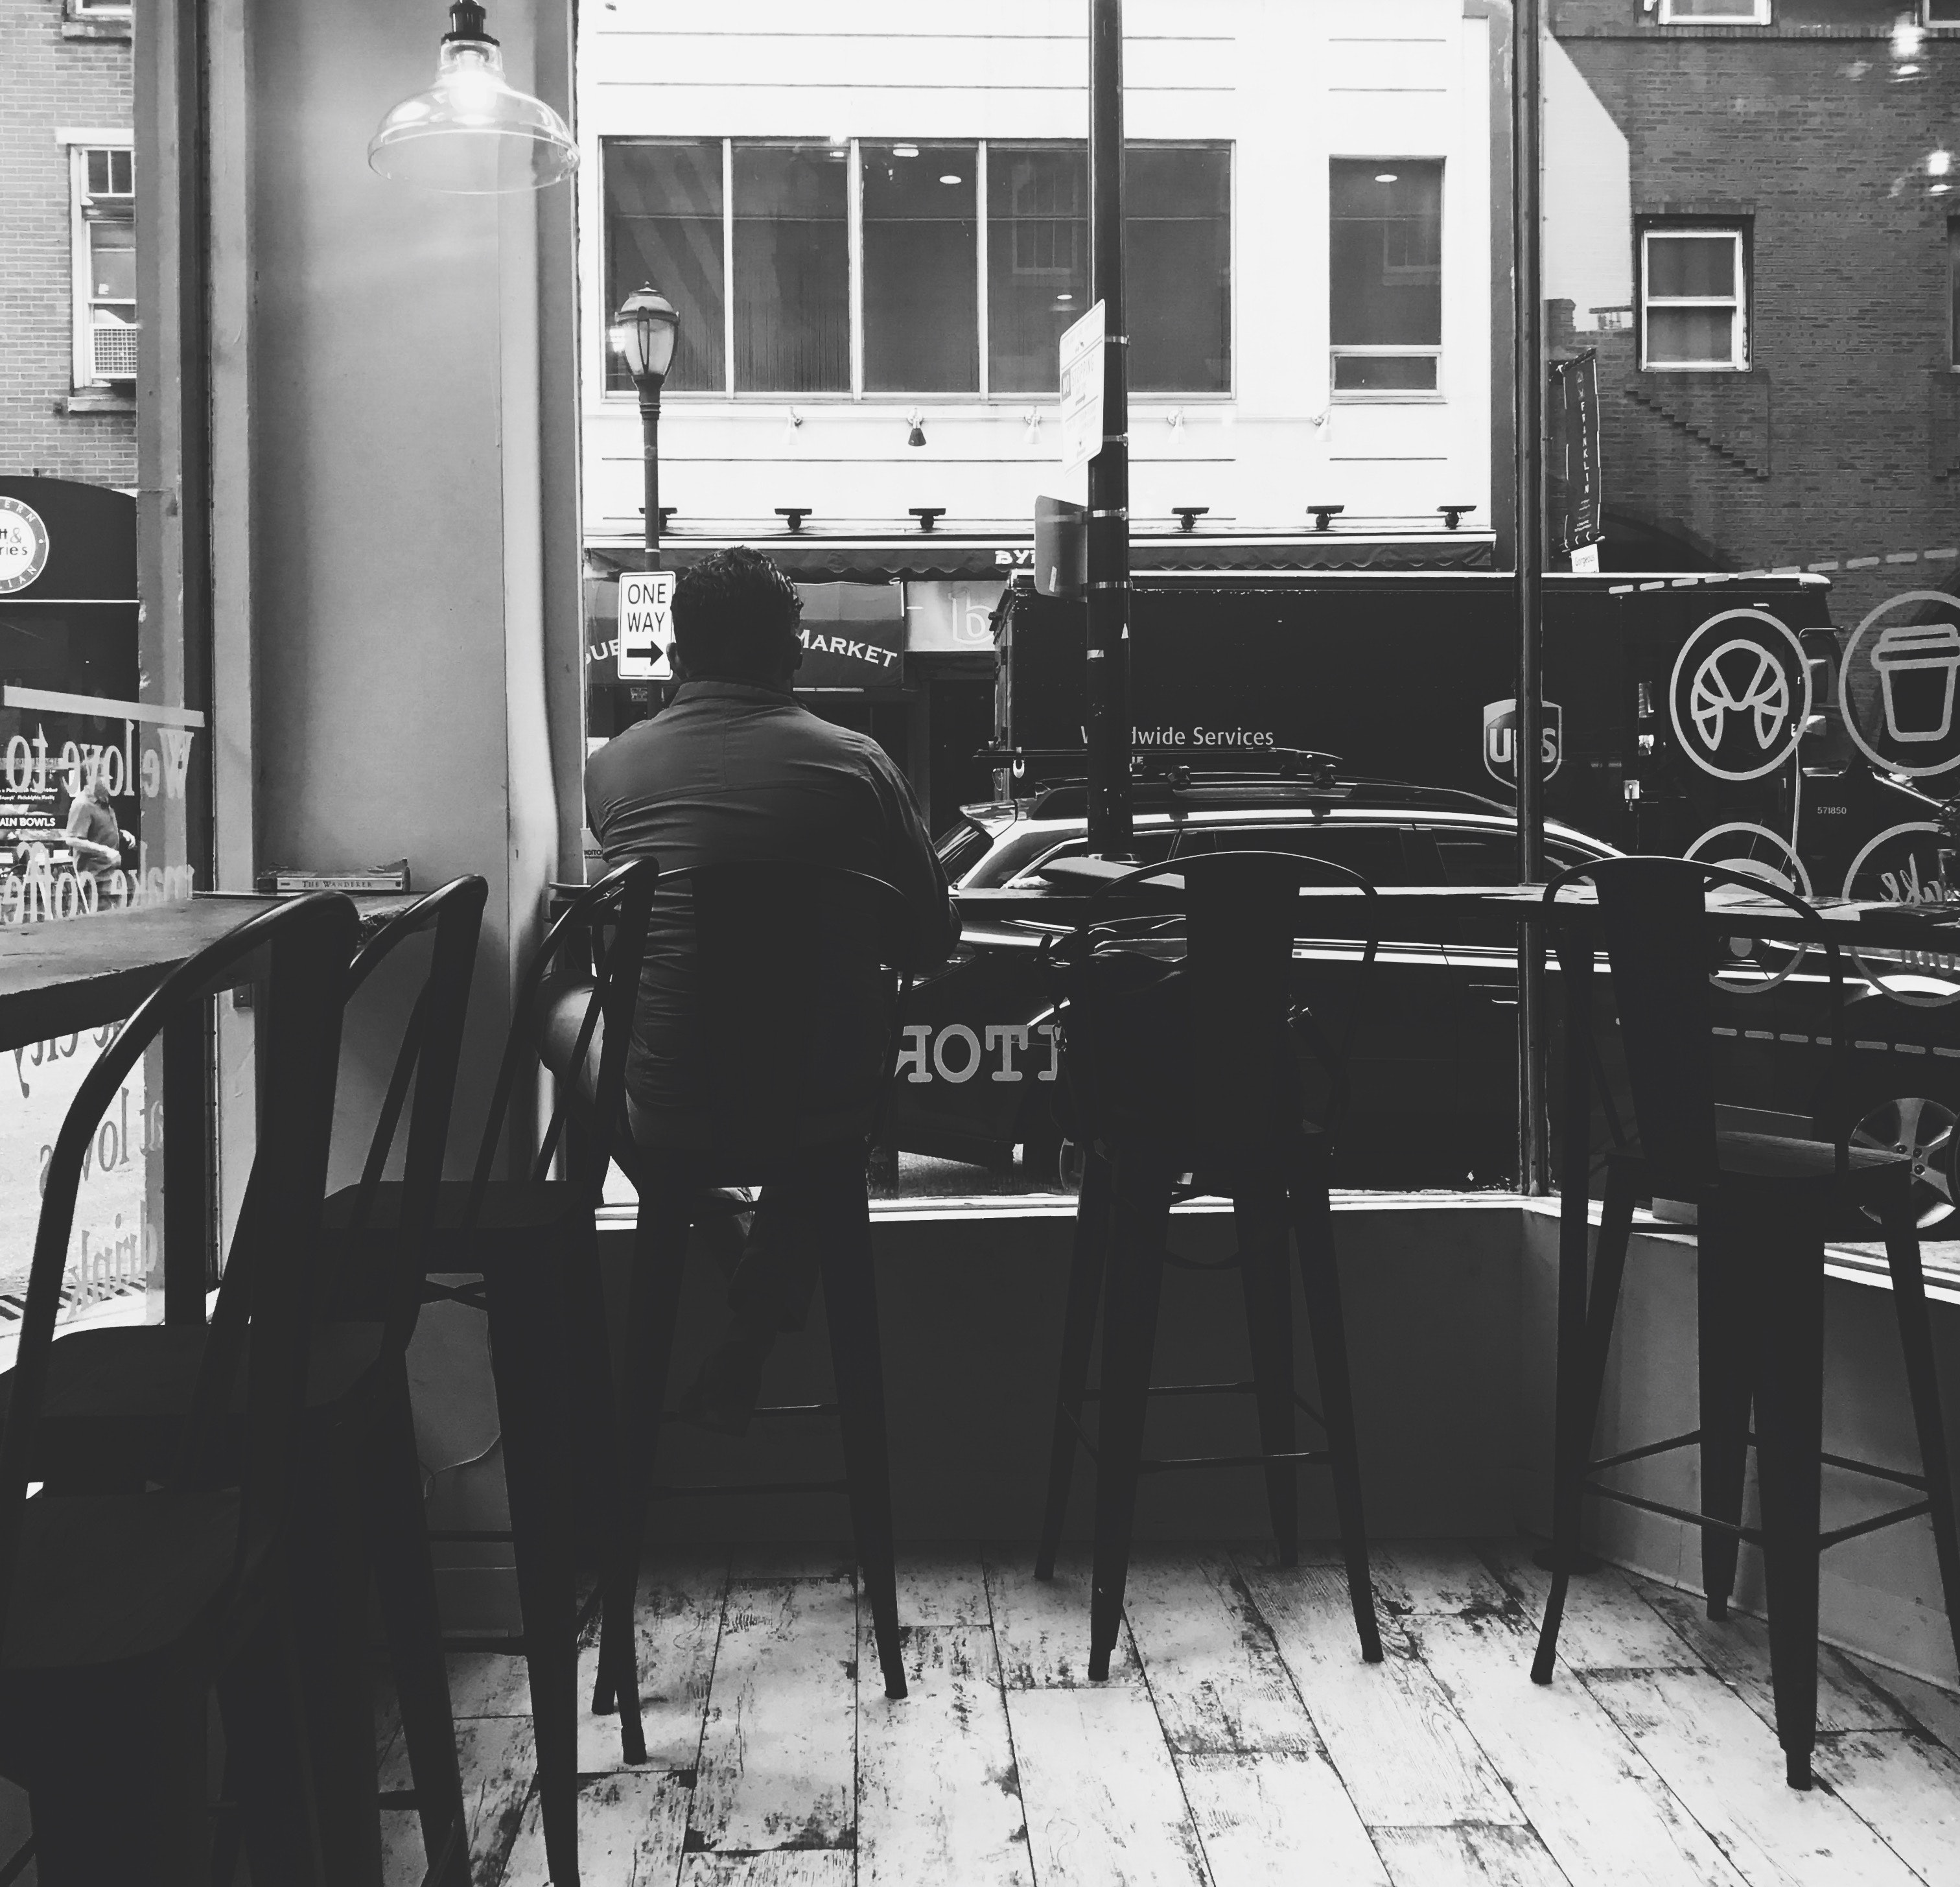 Monochrome Photography of a Man Sitting on the Chair, Adult, Bar, Bar images, Black-and-white, HQ Photo